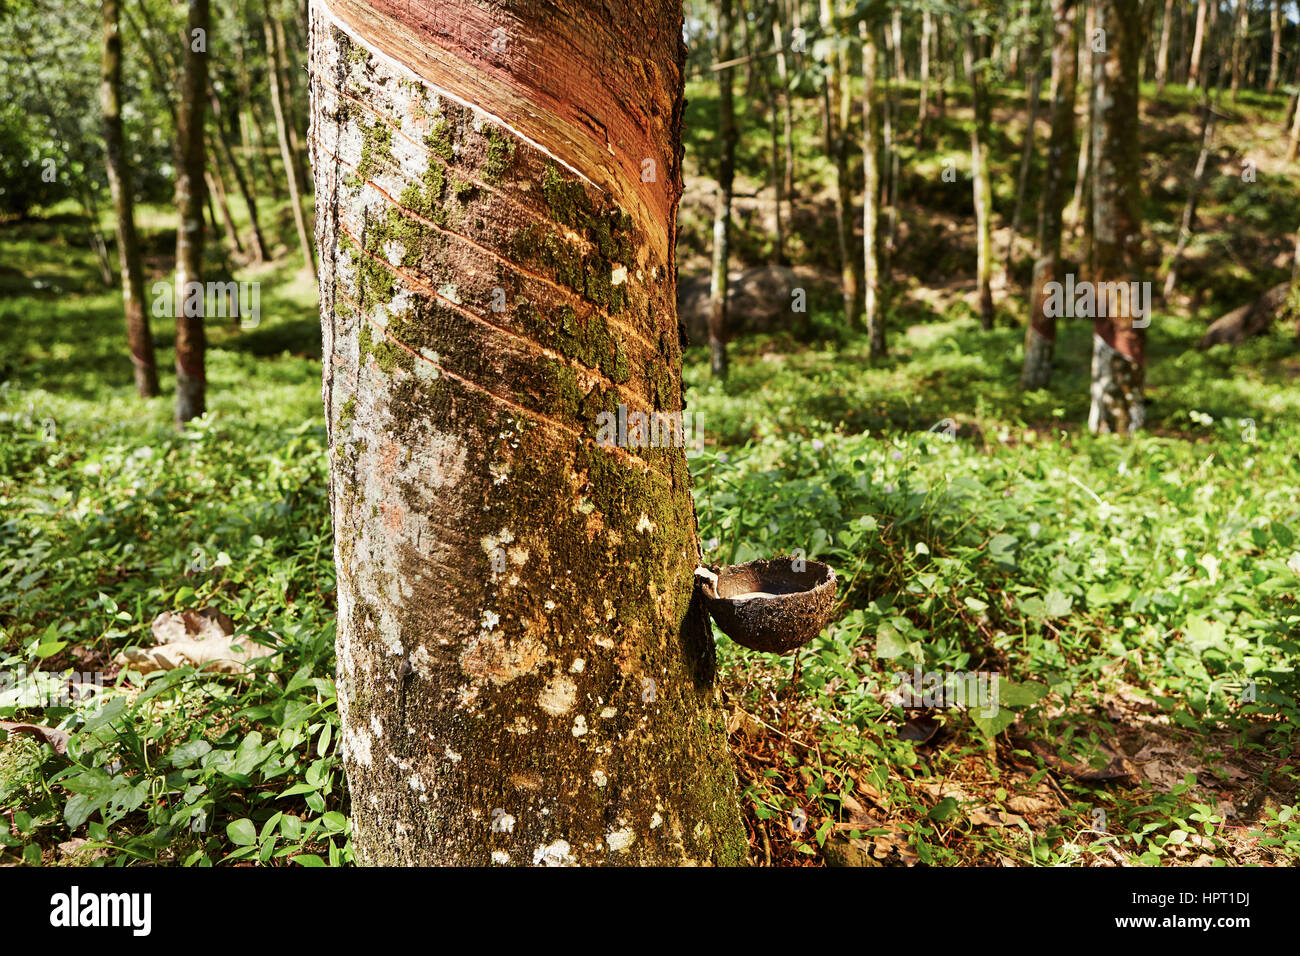 Tapping sap from the rubber tree in Sri Lanka - Stock Image